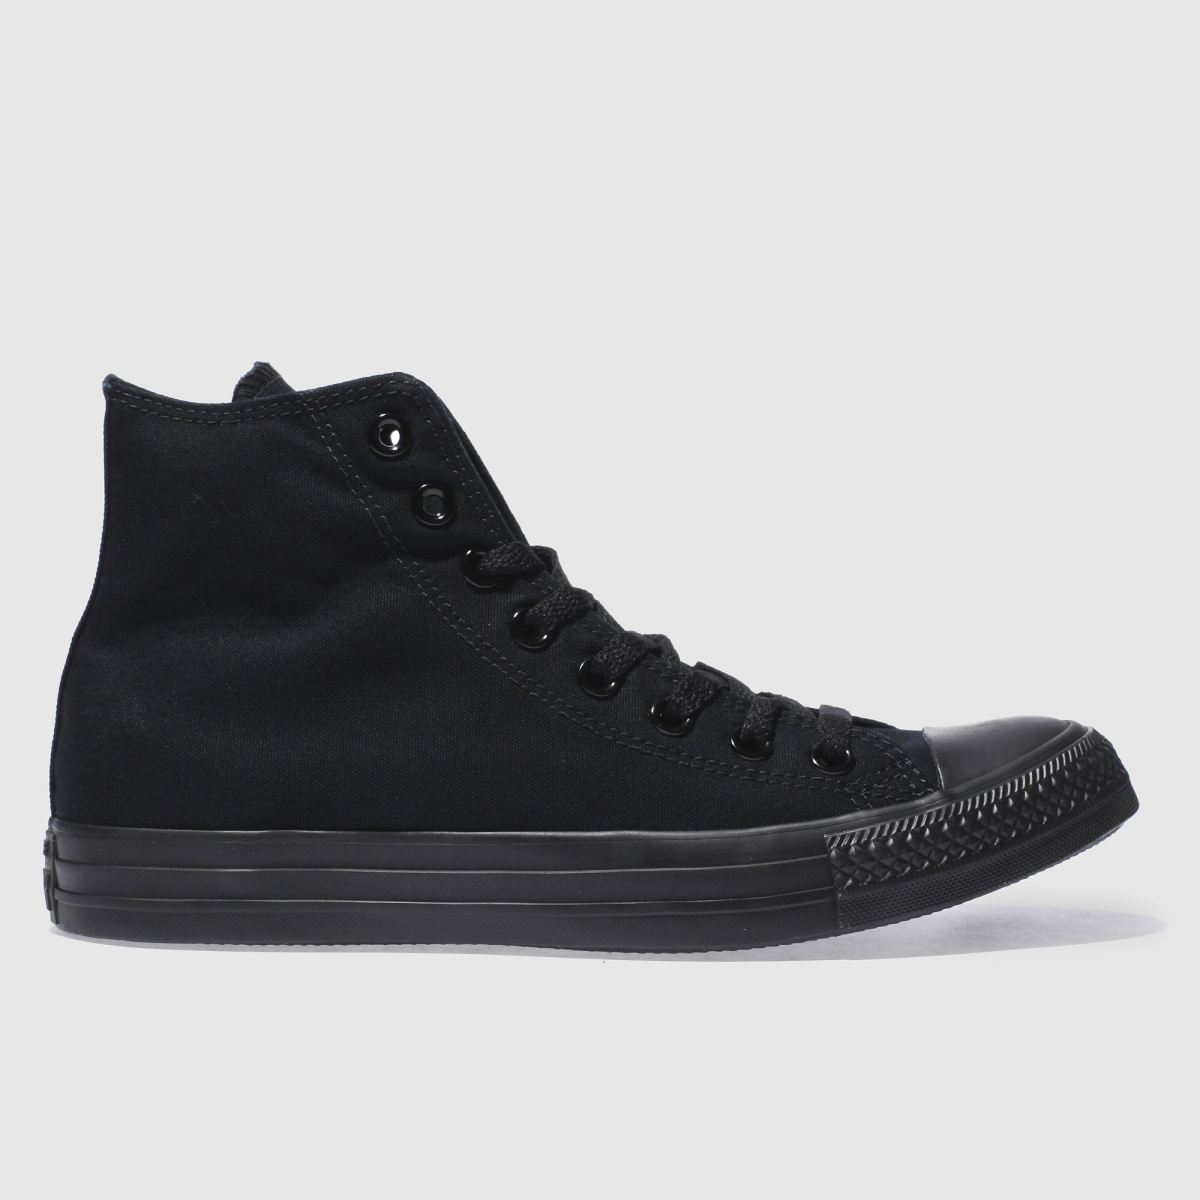 Adidas High Tops Black